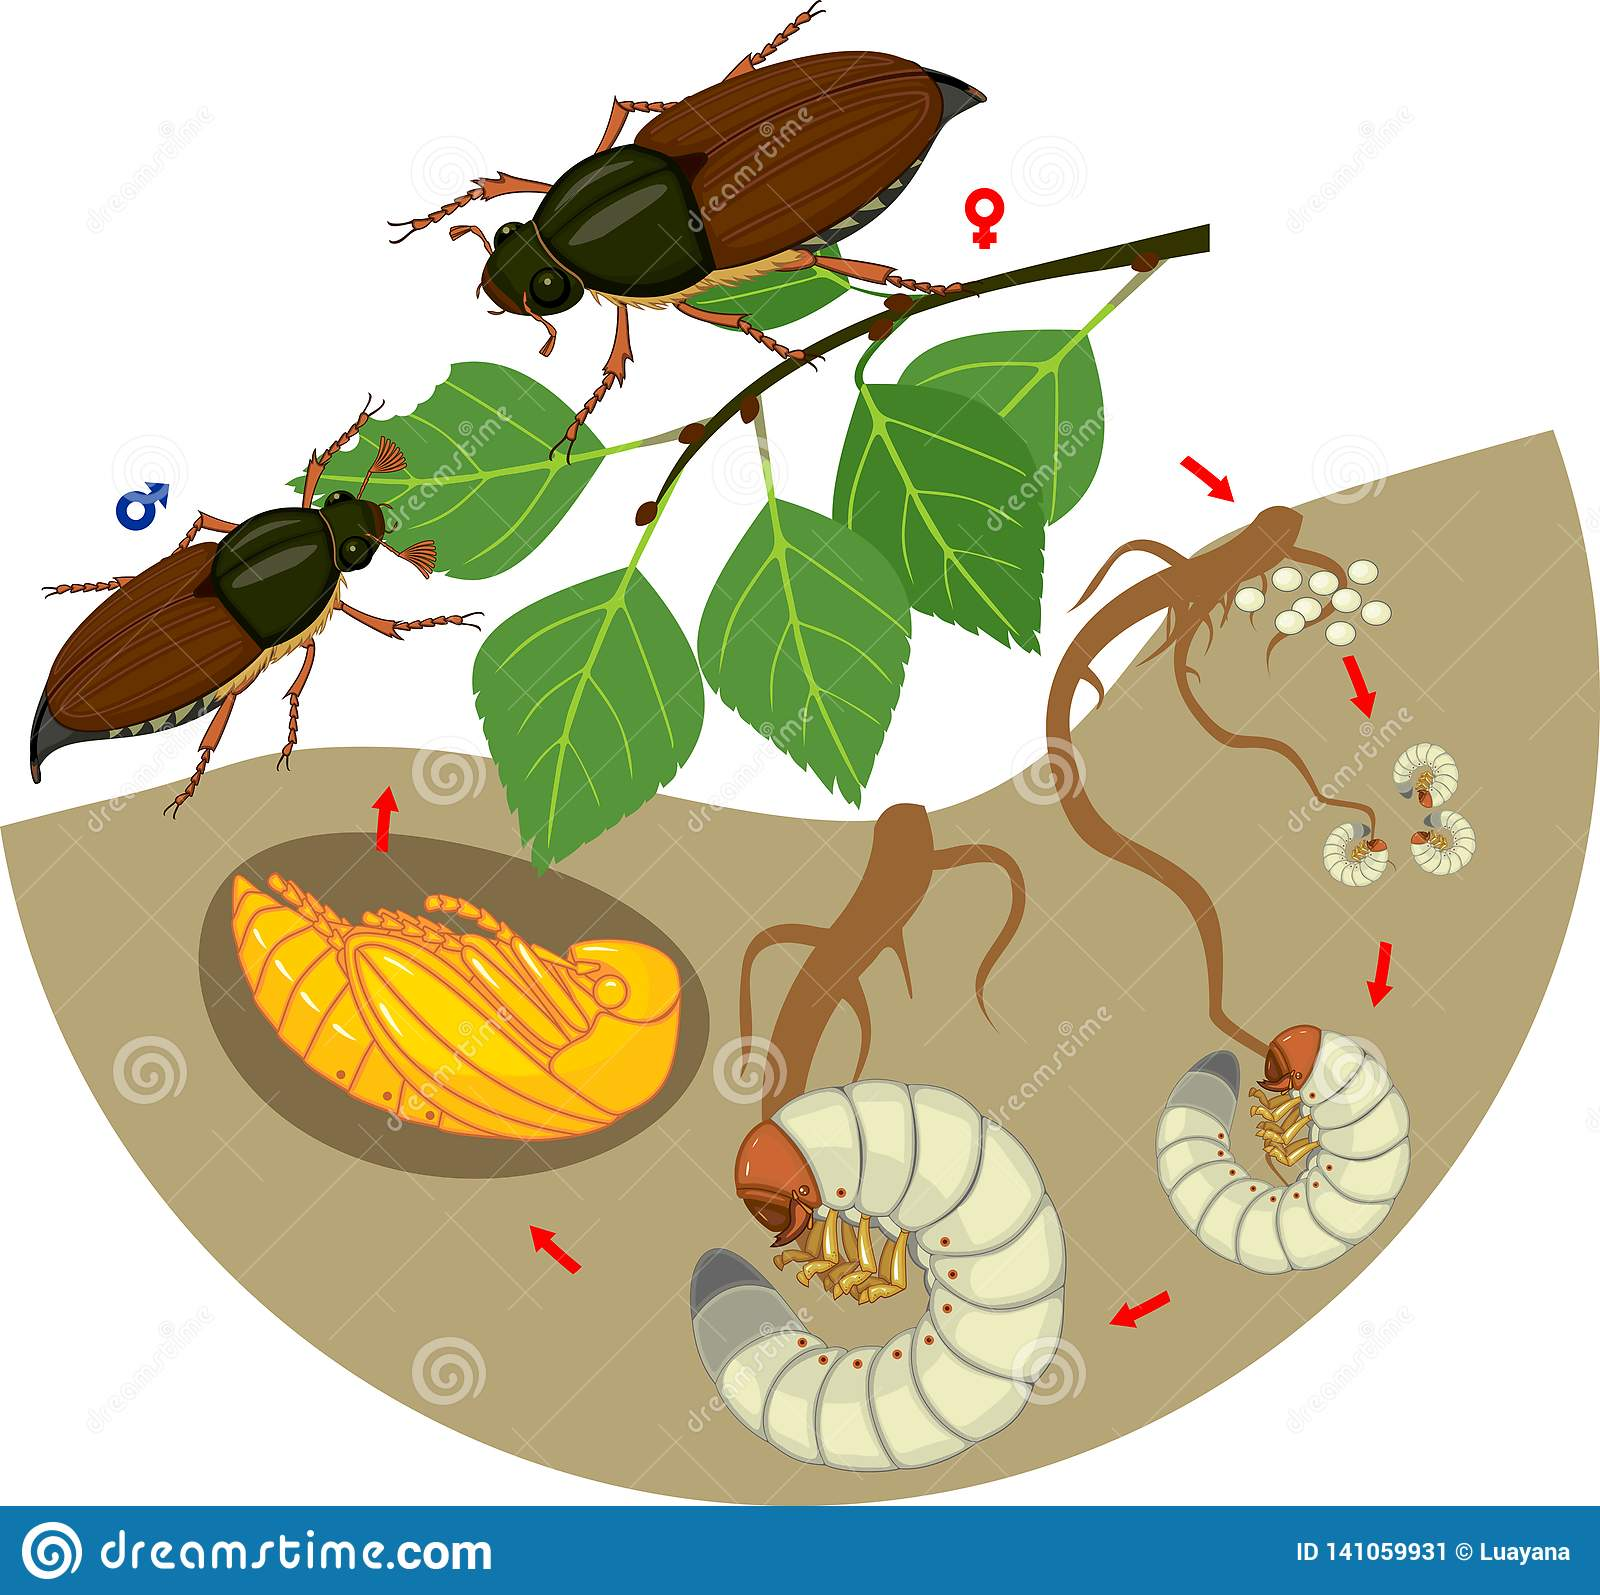 Life Cycle Of Cockchafer Sequence Of Stages Of